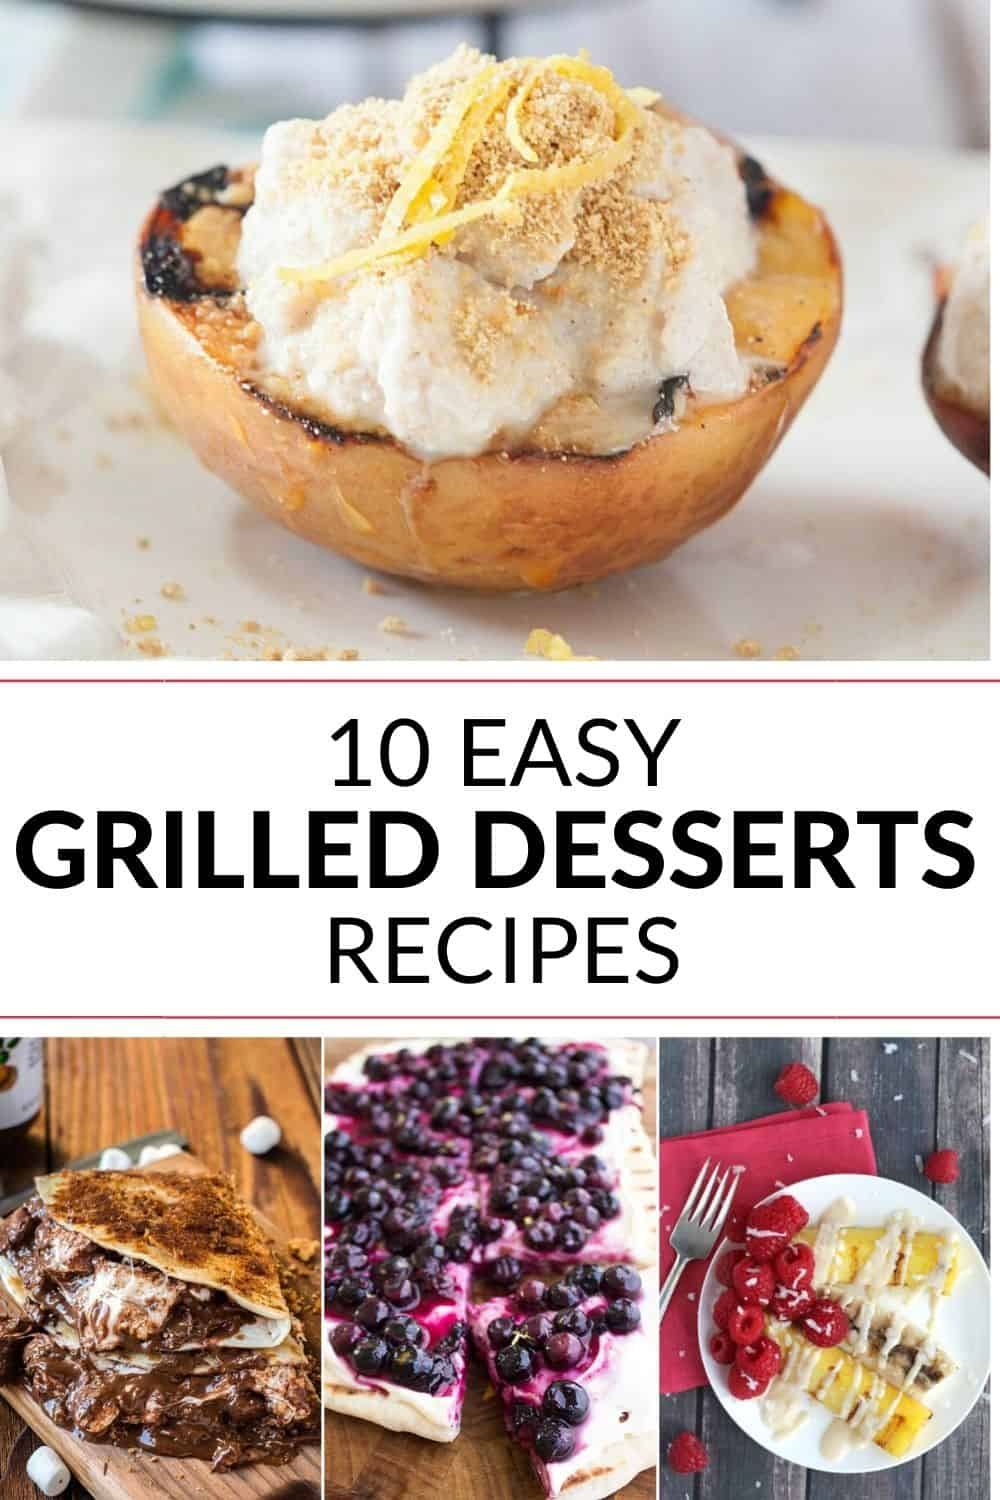 These grilled desserts are easy recipes and a great way to diversify your recipes!